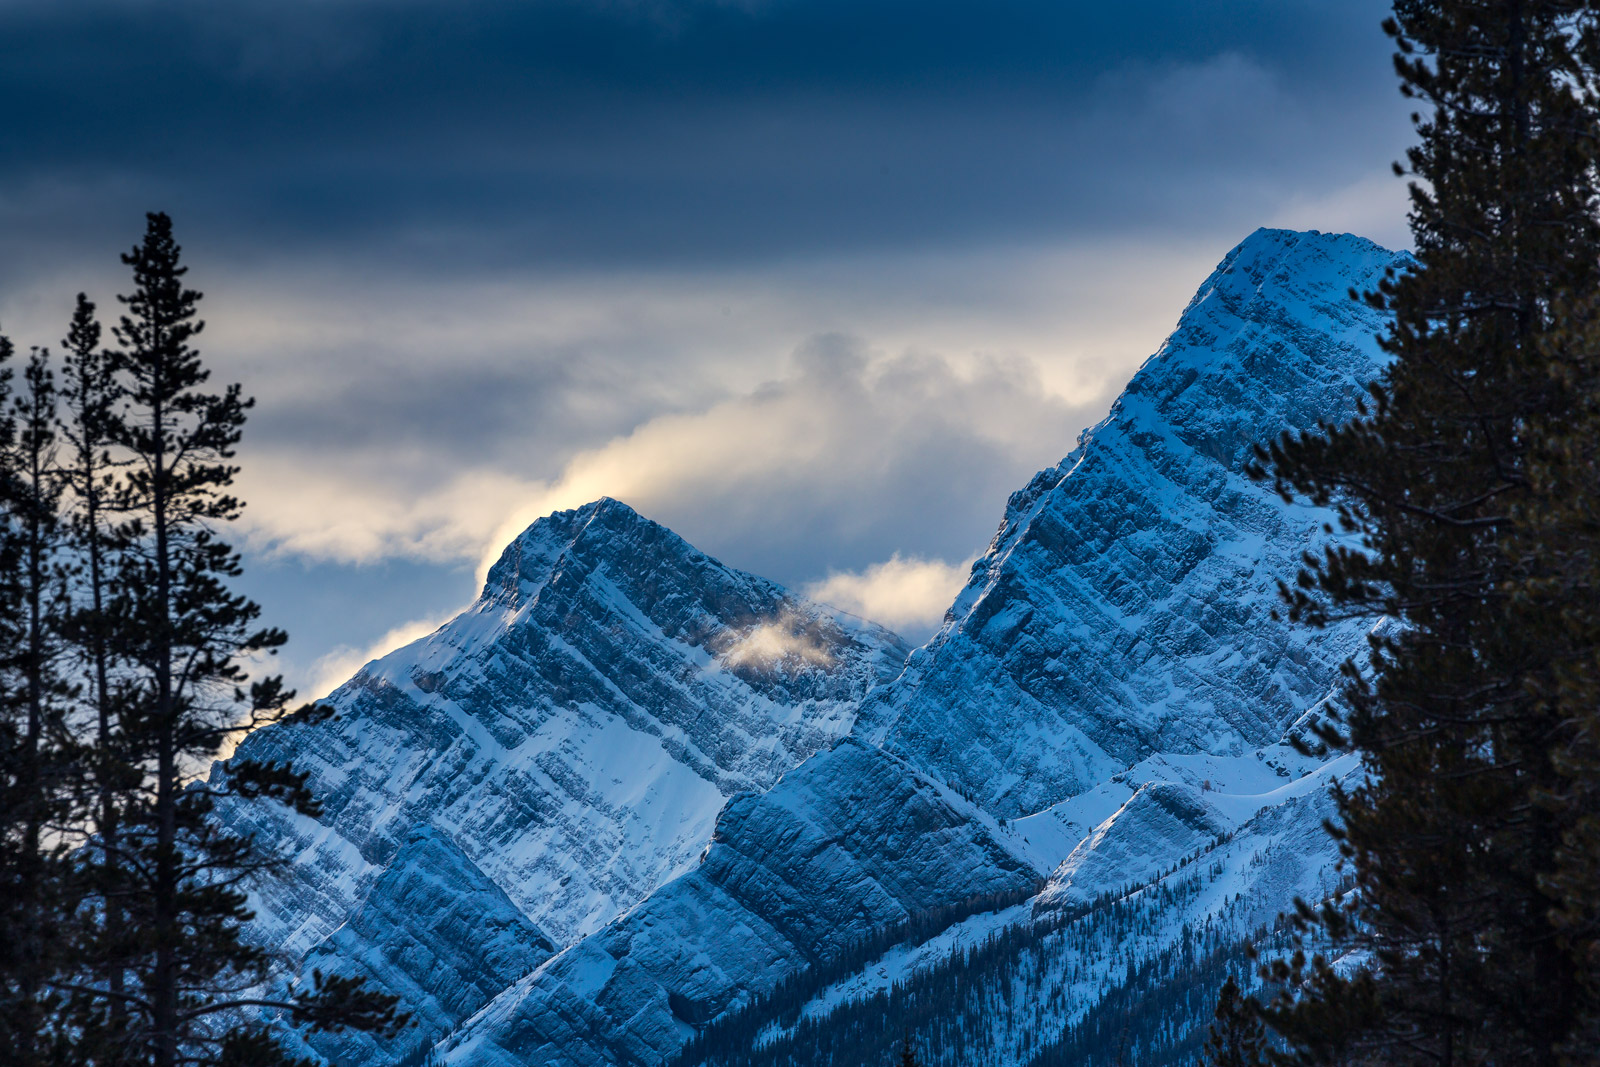 Canada, Mountain, Winter, Storm, photo